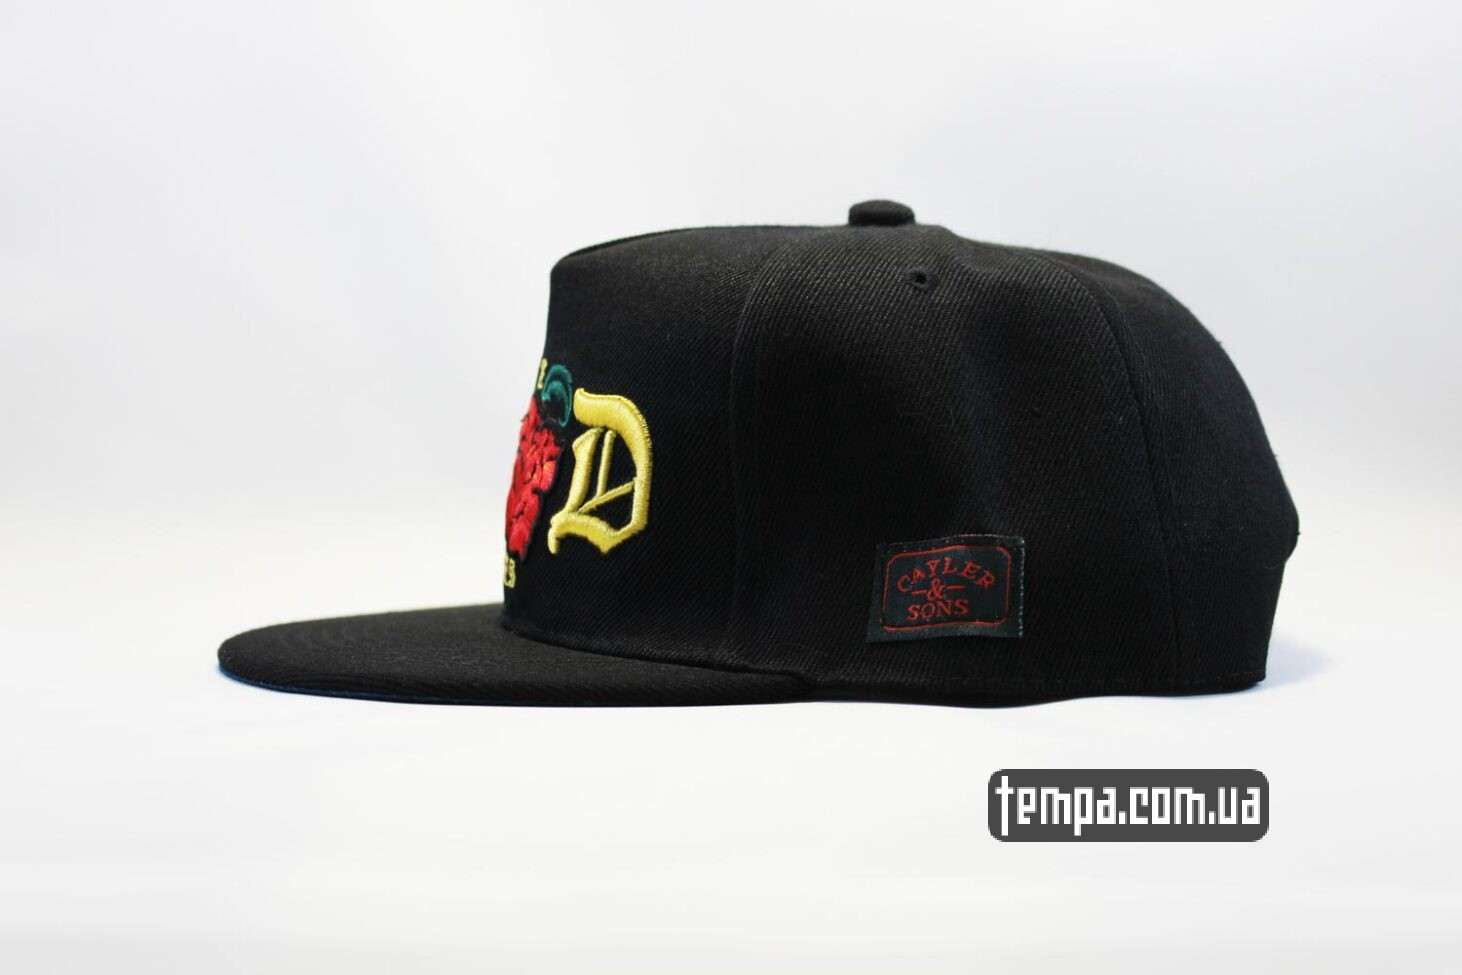 rose бейсболка кепка snapback the good times с розами cayler and sons